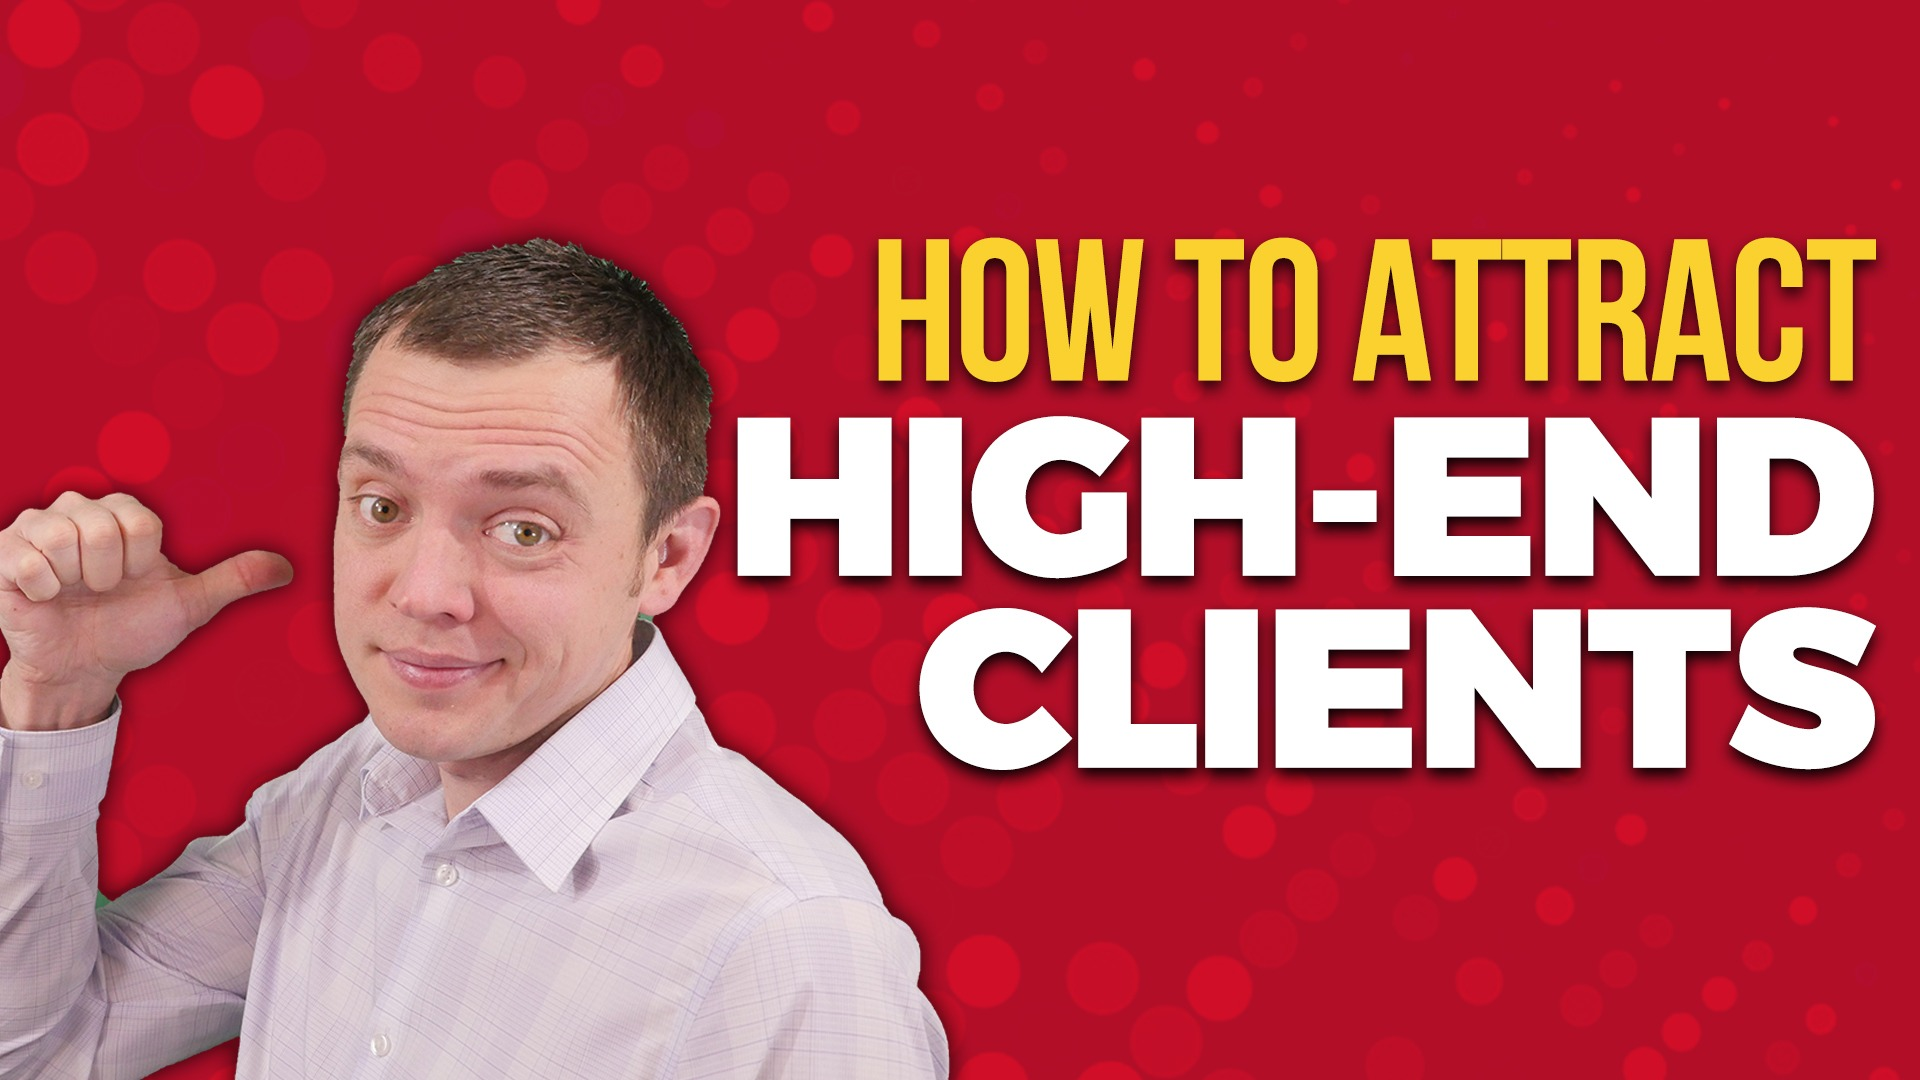 Attracting Higher-End Coaching Clients (Right People and Topics)